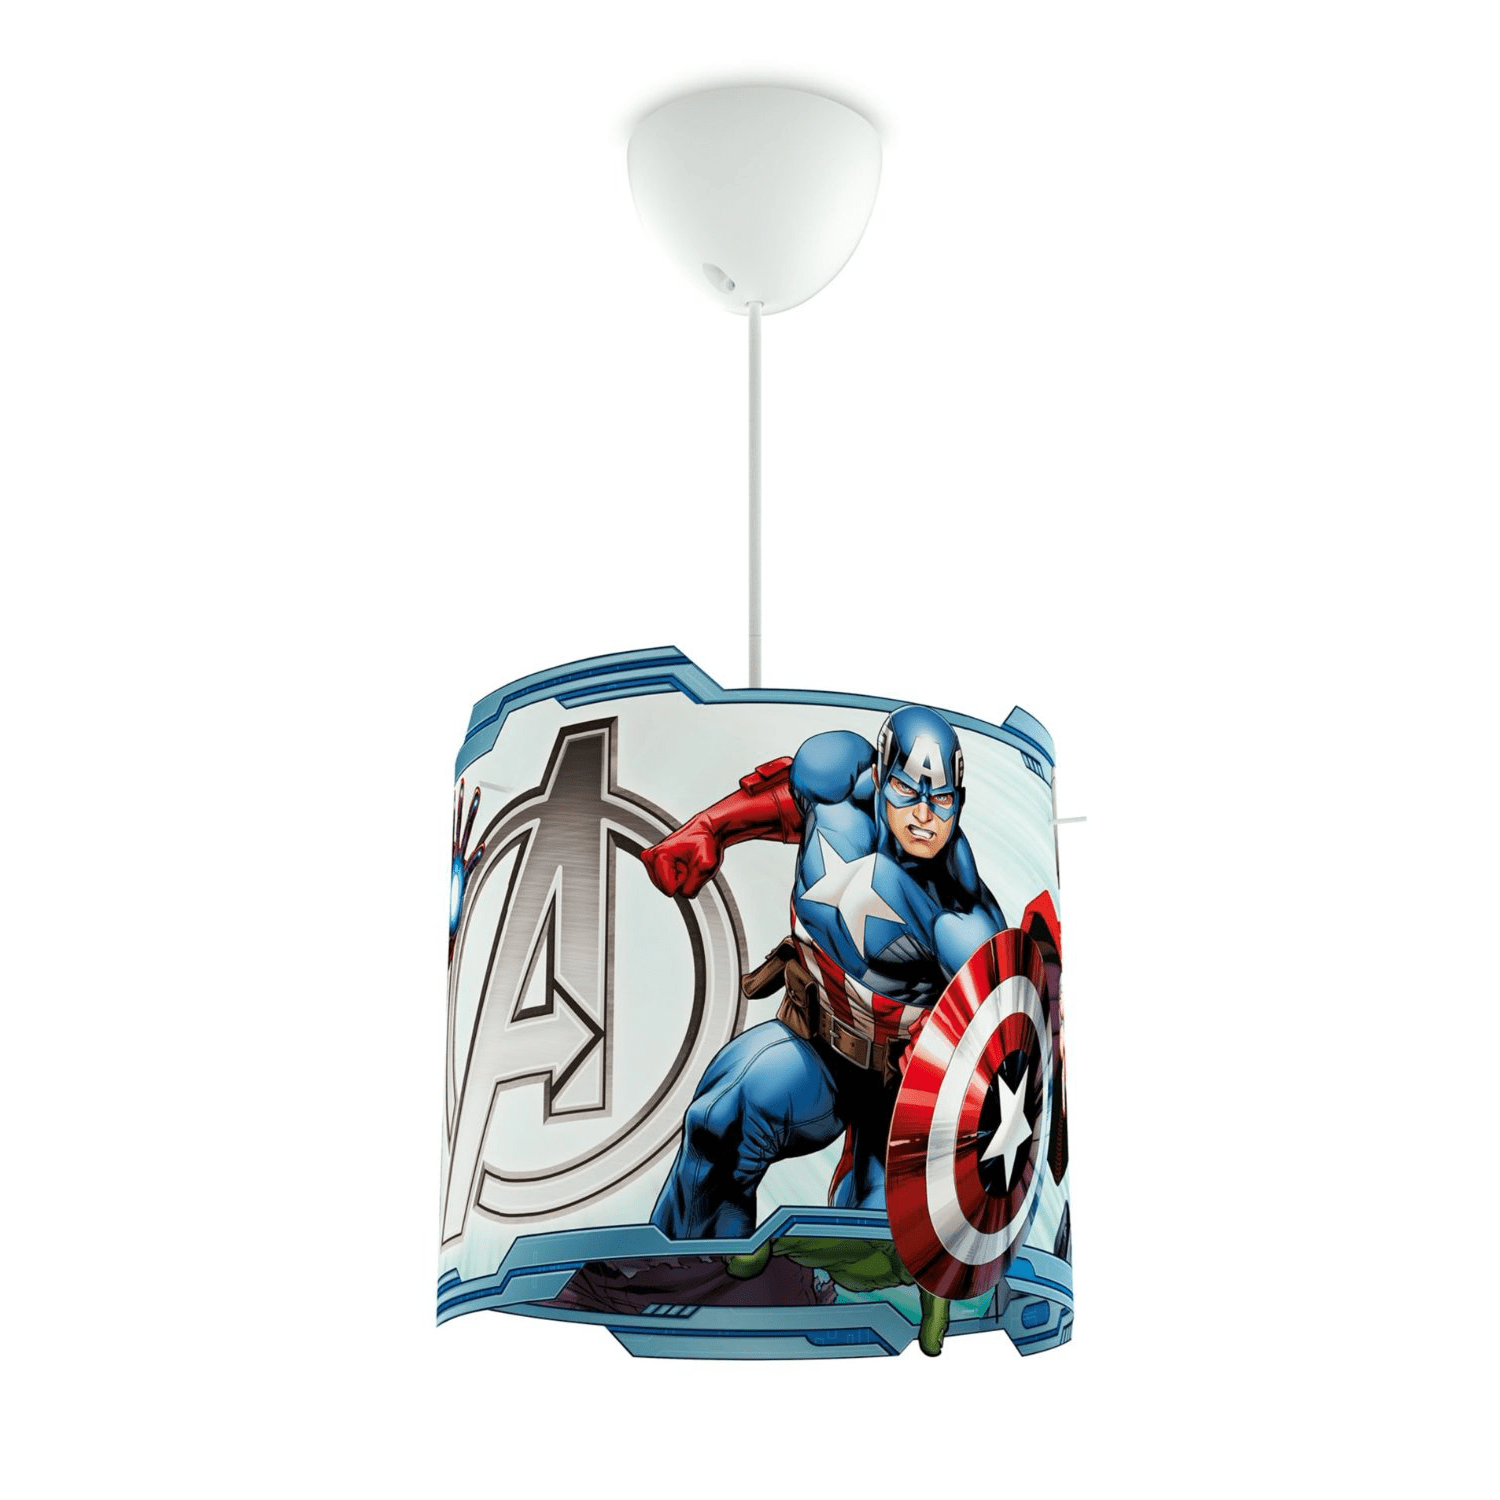 Led Lampe Kinderzimmer Philips Marvel Avengers Led Pendelleuchte Kinderzimmer